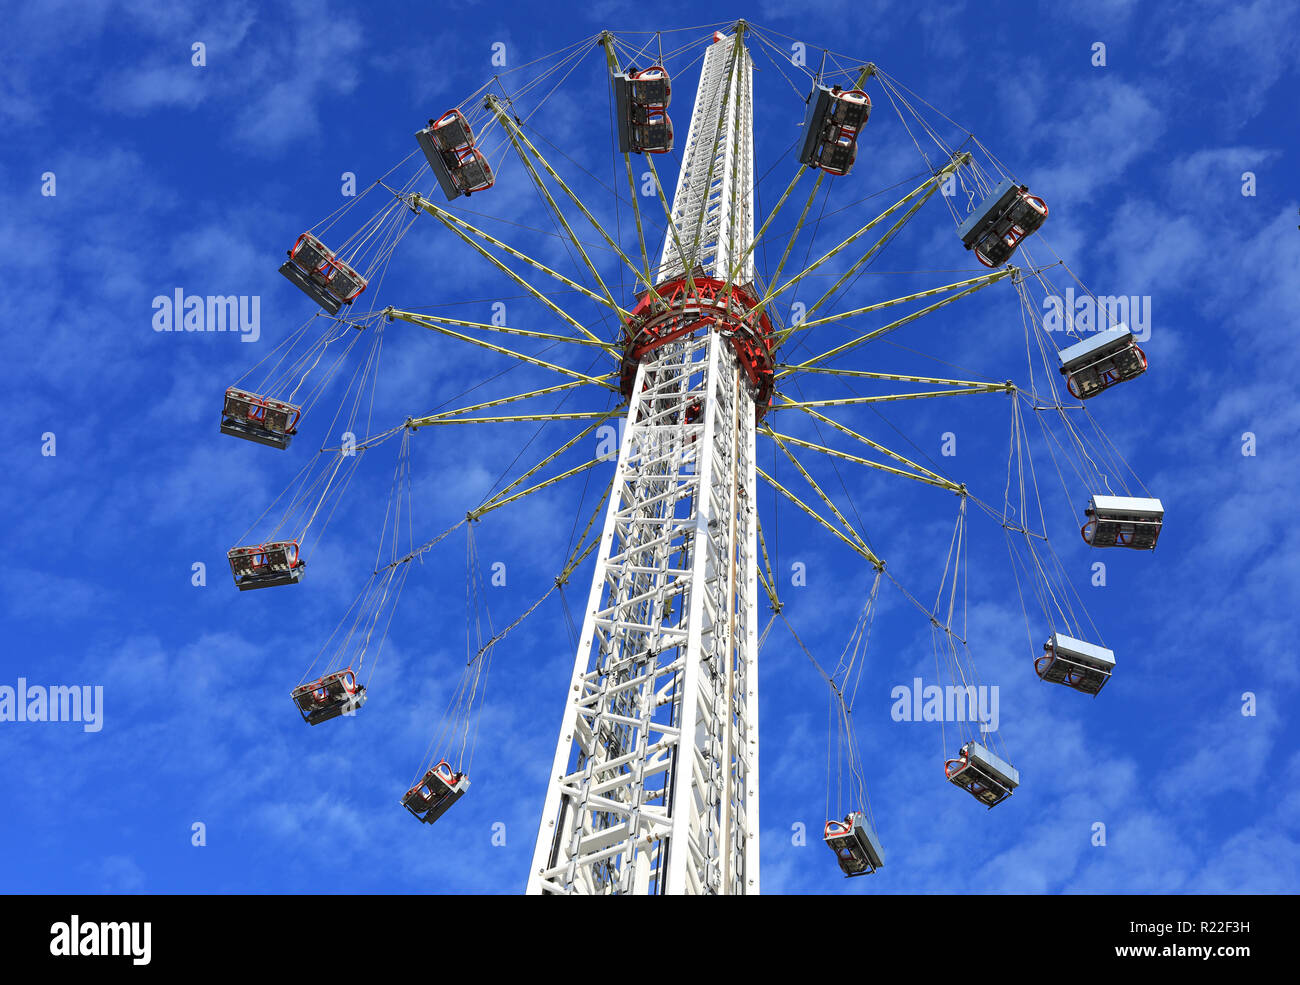 Magdeburg, Germany. 15th Nov, 2018. An 80 metre high chain carousel is set up on the Magdeburg Christmas market. From 26.11.2018, 32 passengers will be able to view the state capital from the air at a maximum speed of 70km/h. The carny family Gebrüder Boos is building their ride 'Art of Flying' for the first time in Saxony-Anhalt. There are only two of these rides in Germany. Credit: Peter Gercke/dpa-Zentralbild/ZB/dpa/Alamy Live News - Stock Image